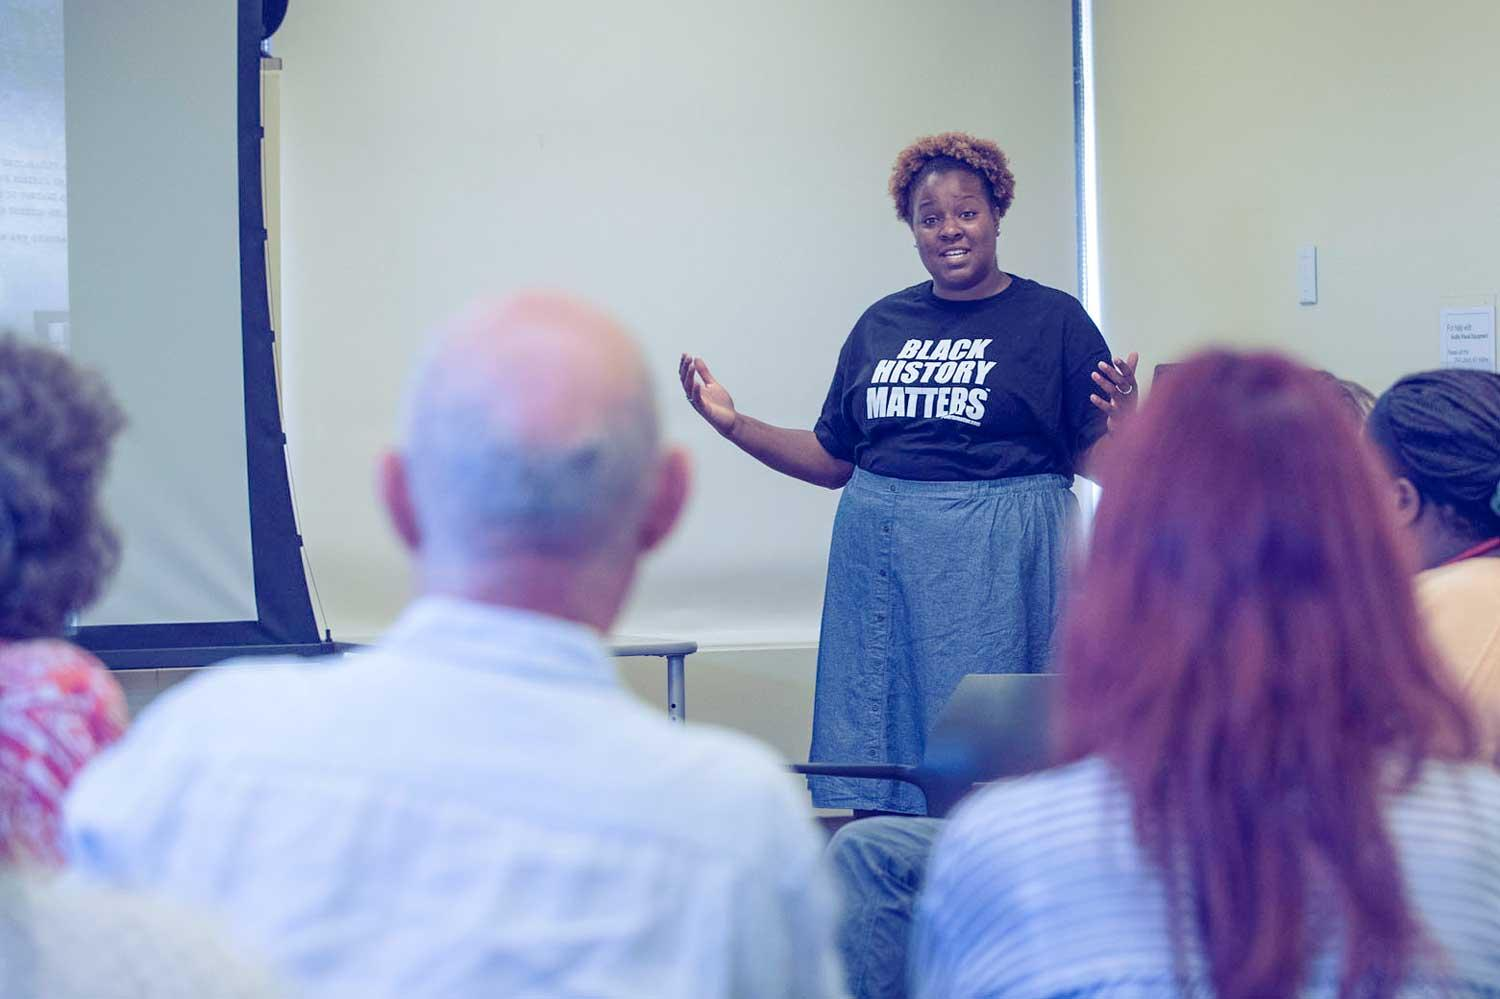 Niya Bates, Public Historian of Slavery and African-American Life at Monticello, discussed efforts to bring the stories of slavery into modern historical narratives before programming stopped on Aug. 12.